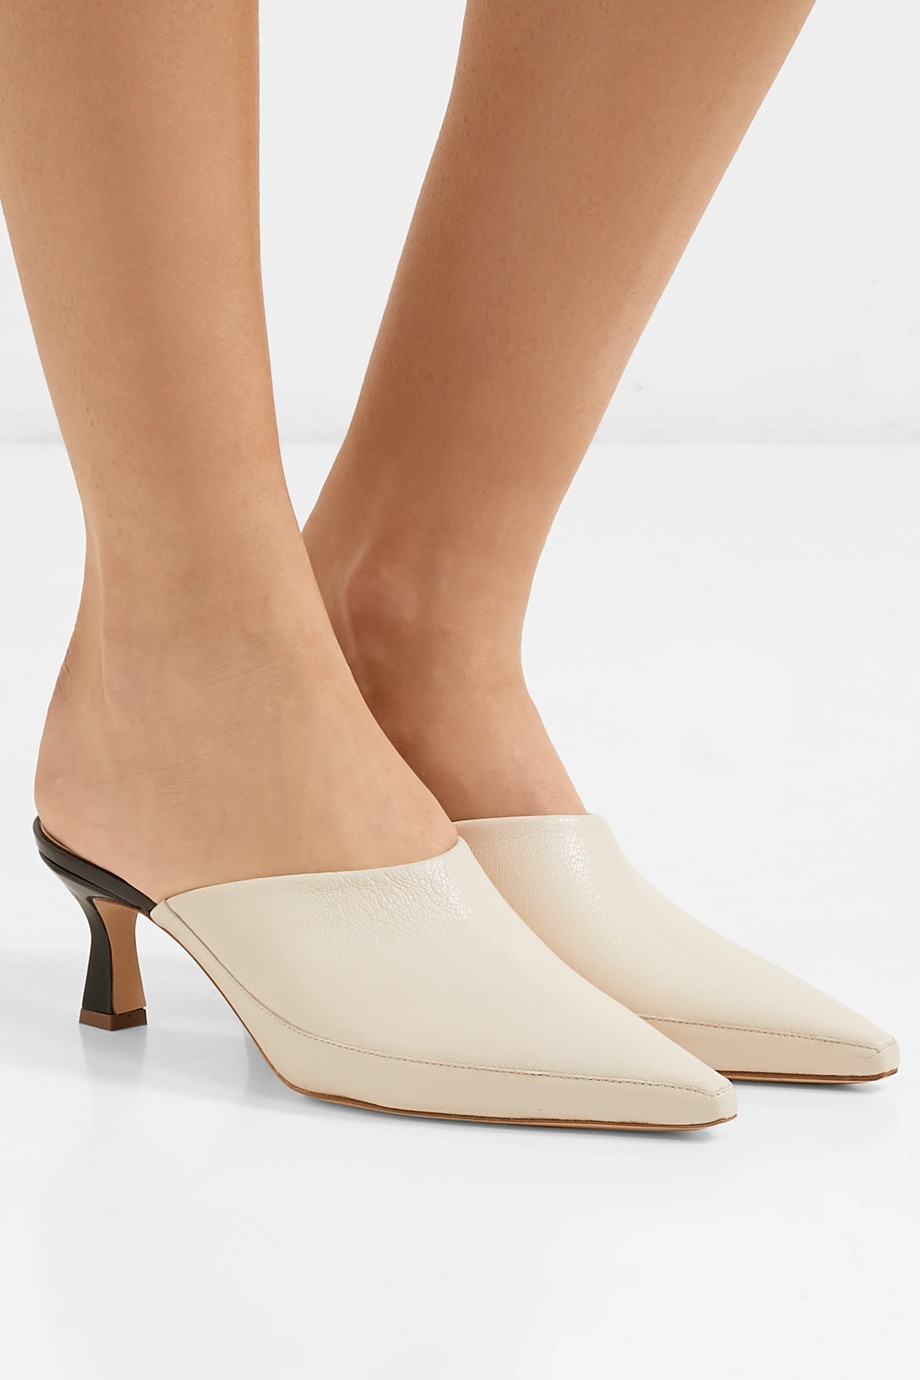 Get 15% Off the Coolest Shoes at Net-A-Porter — Wandlet Bente Mule Heels